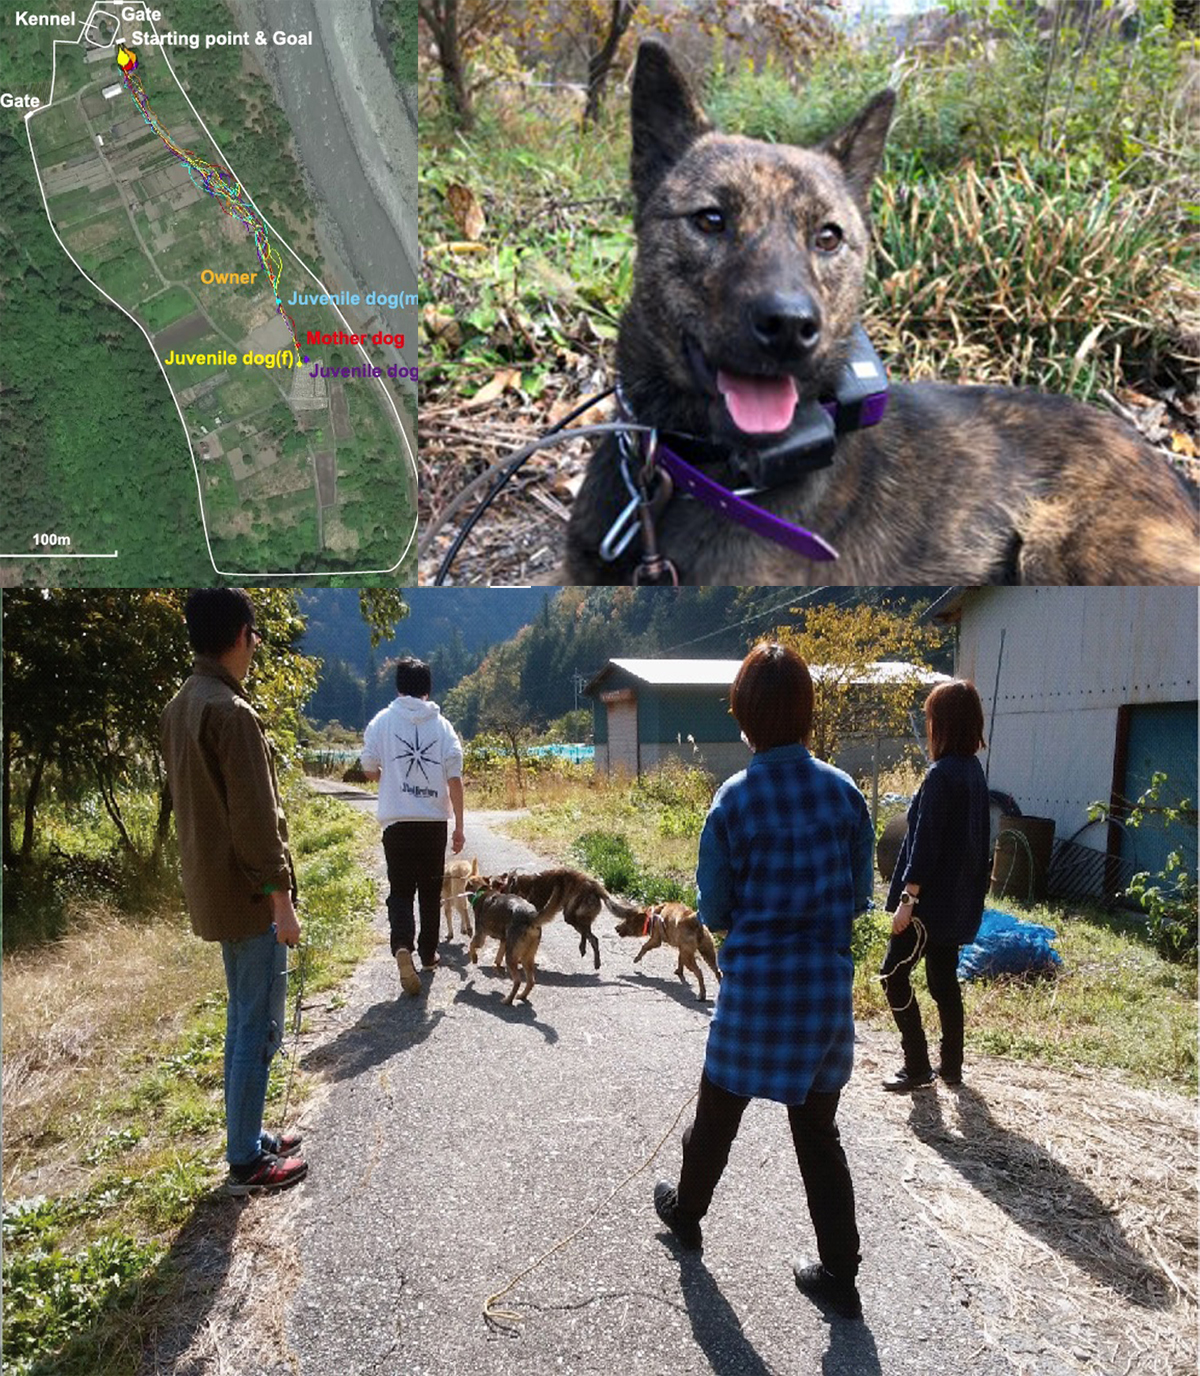 A Pilot Study of the Effects of Human Intervention on Canine Group Movement Behavior